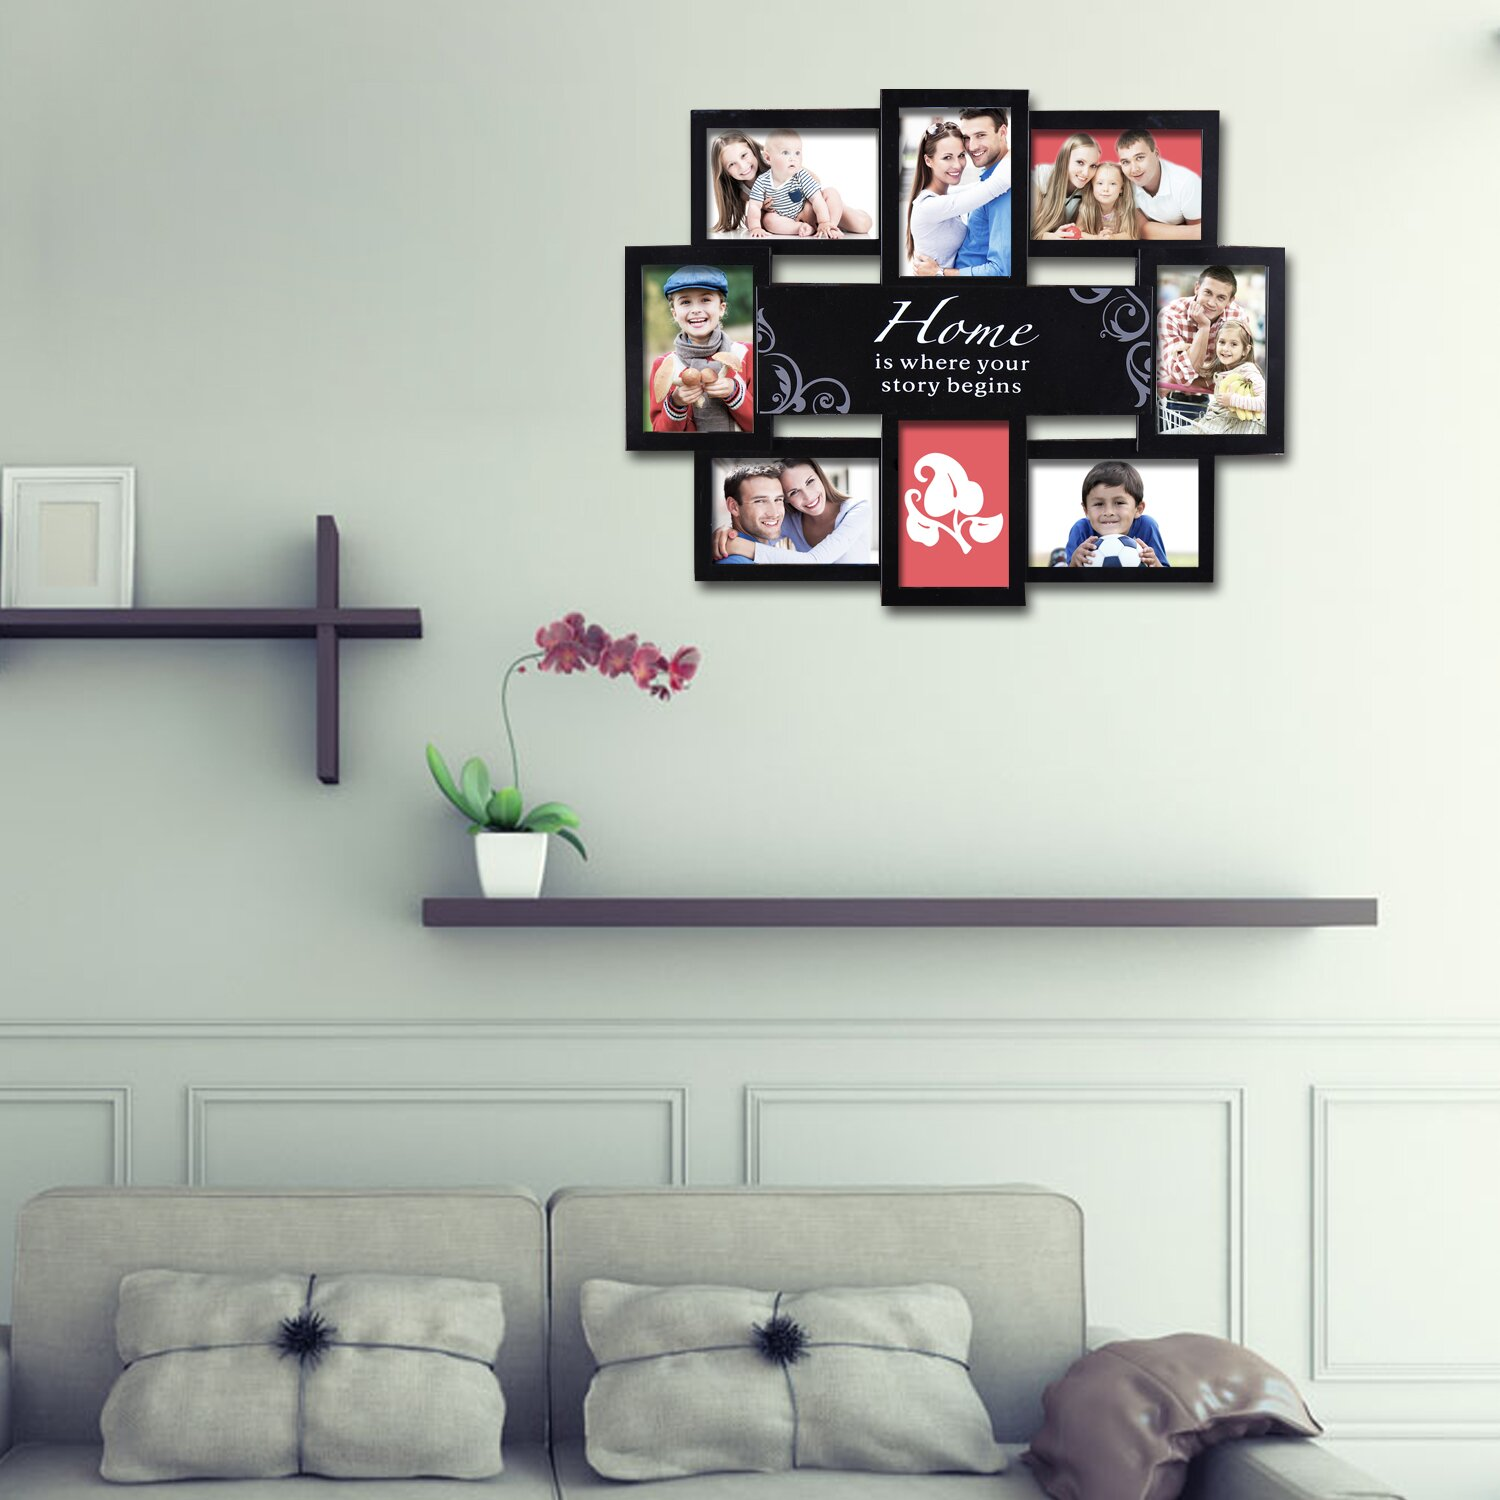 adeco trading 8 opening plastic home is where your story begins photo collage wall hanging picture